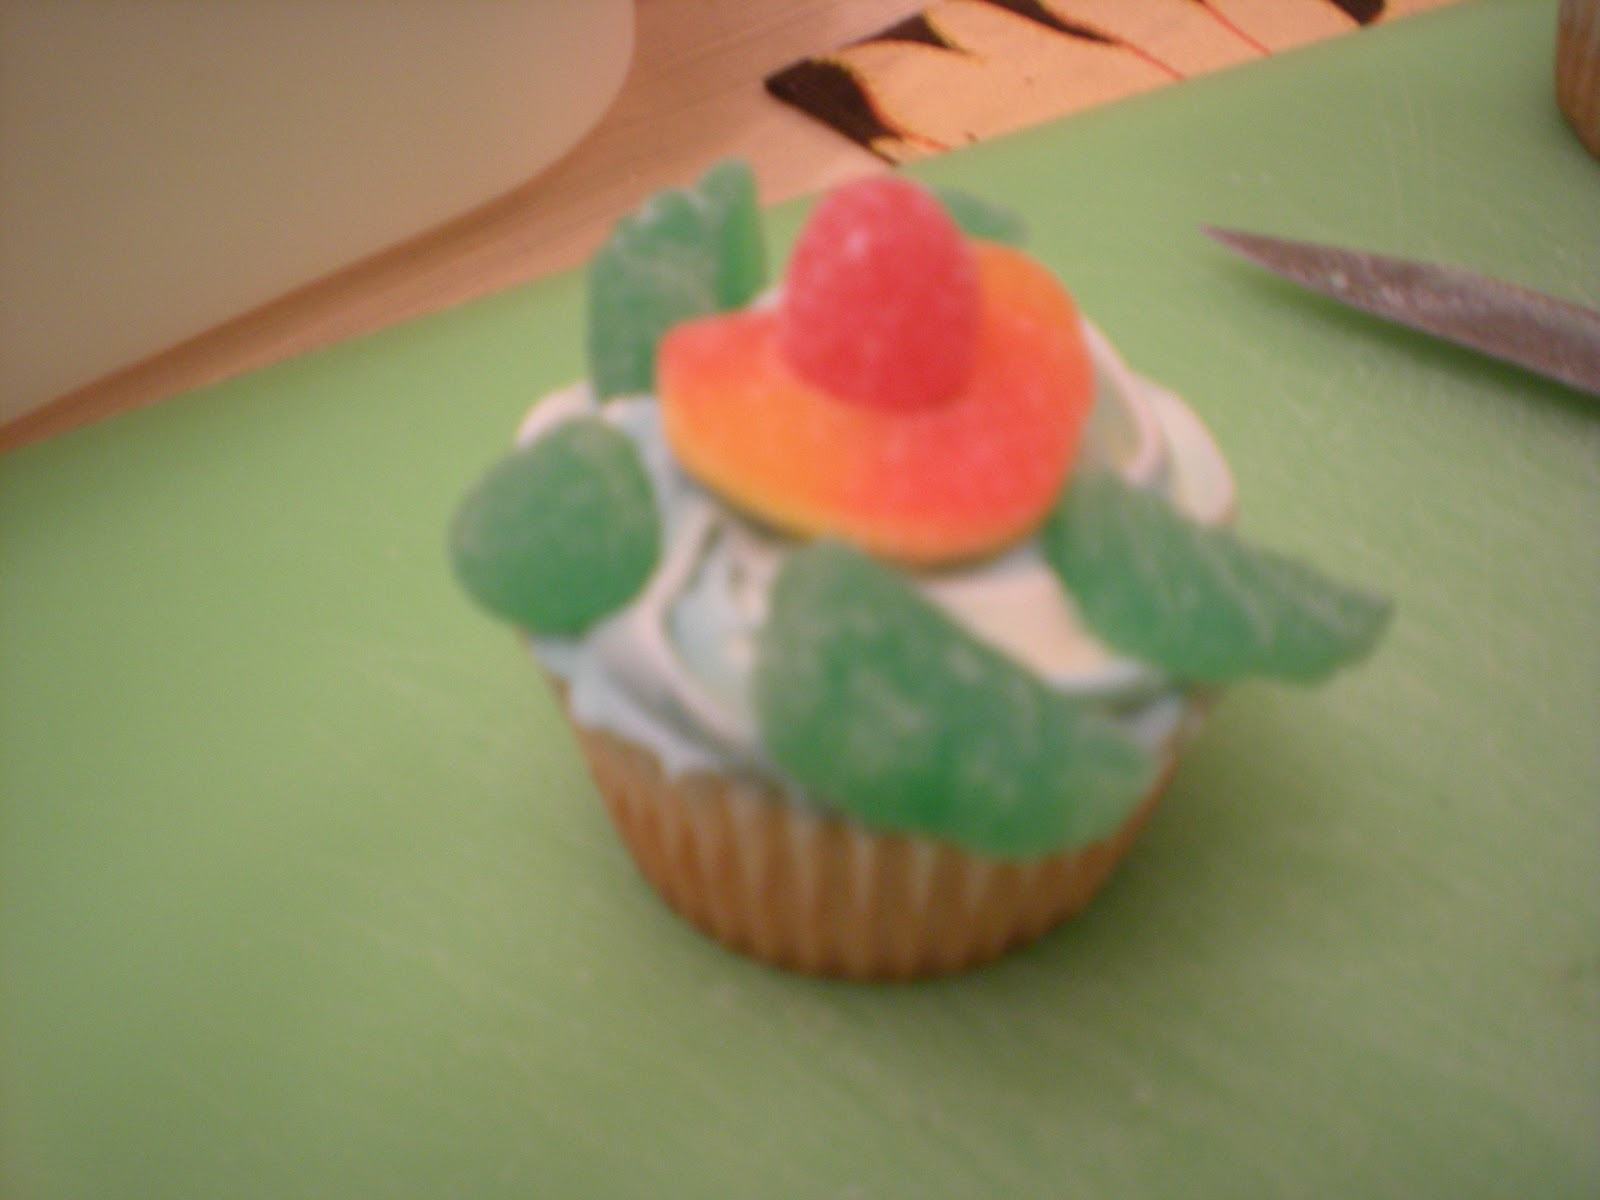 ... foods i made turtle cupcakes for dessert to finish off the turtle